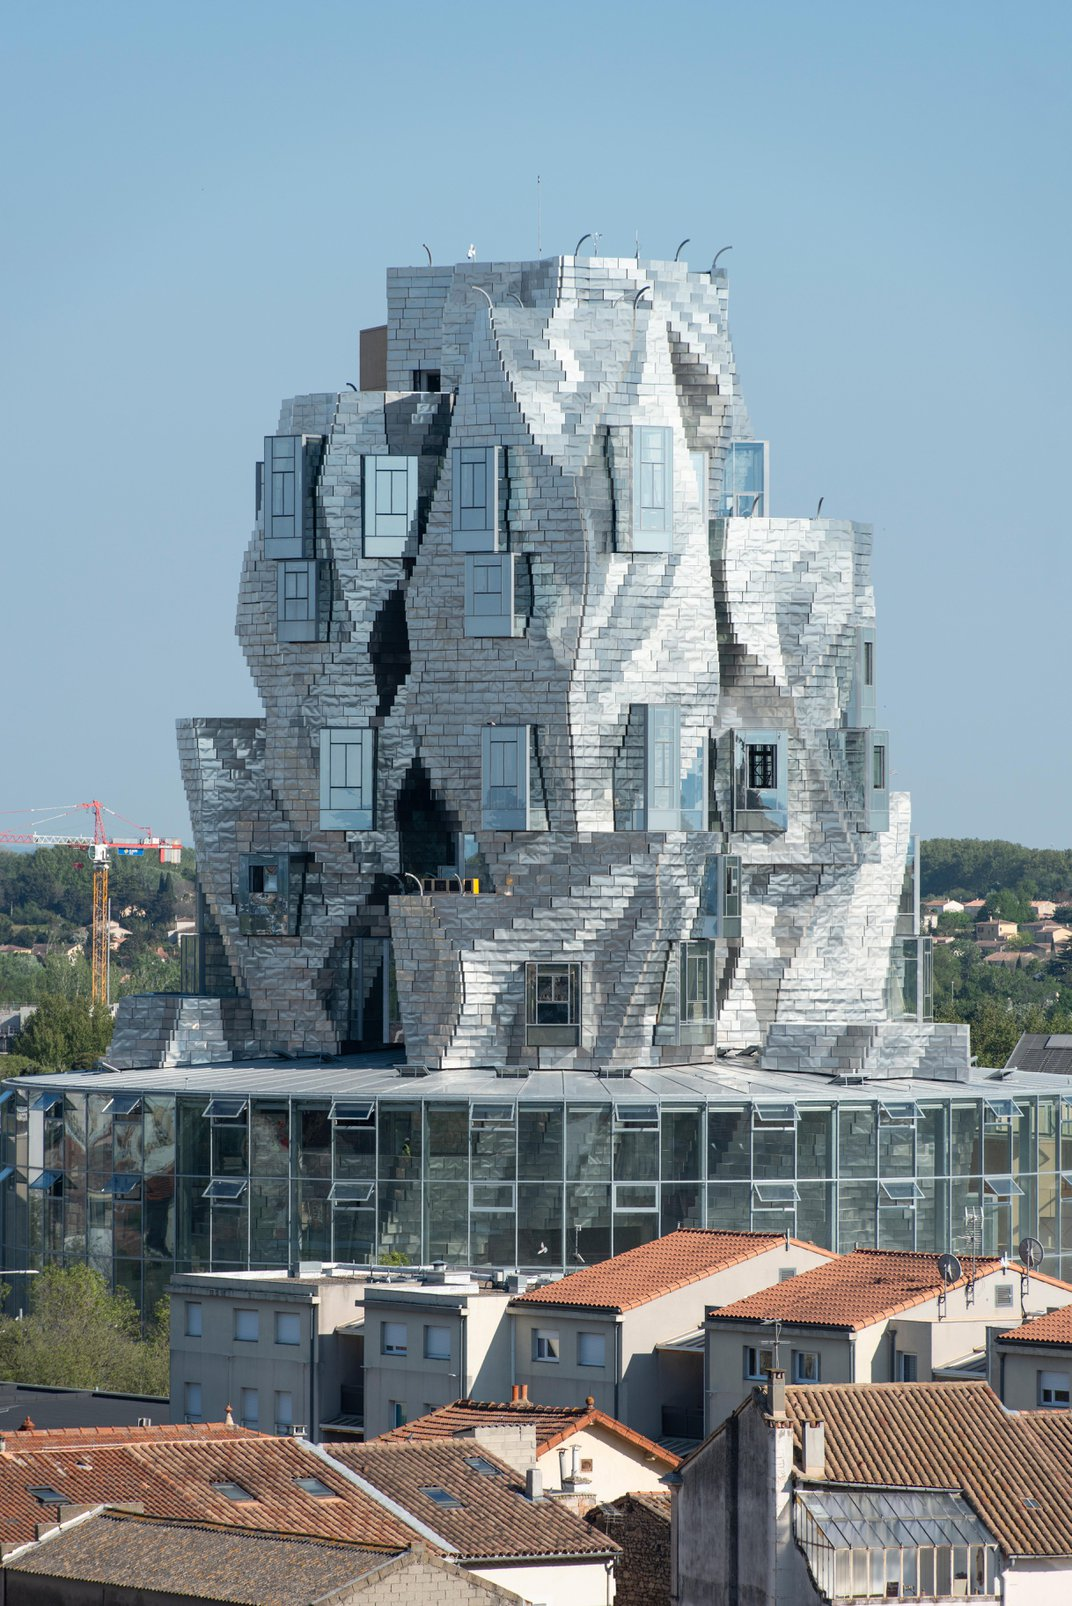 A New Frank Gehry Tower Rises Above the Quaint French Town of Arles